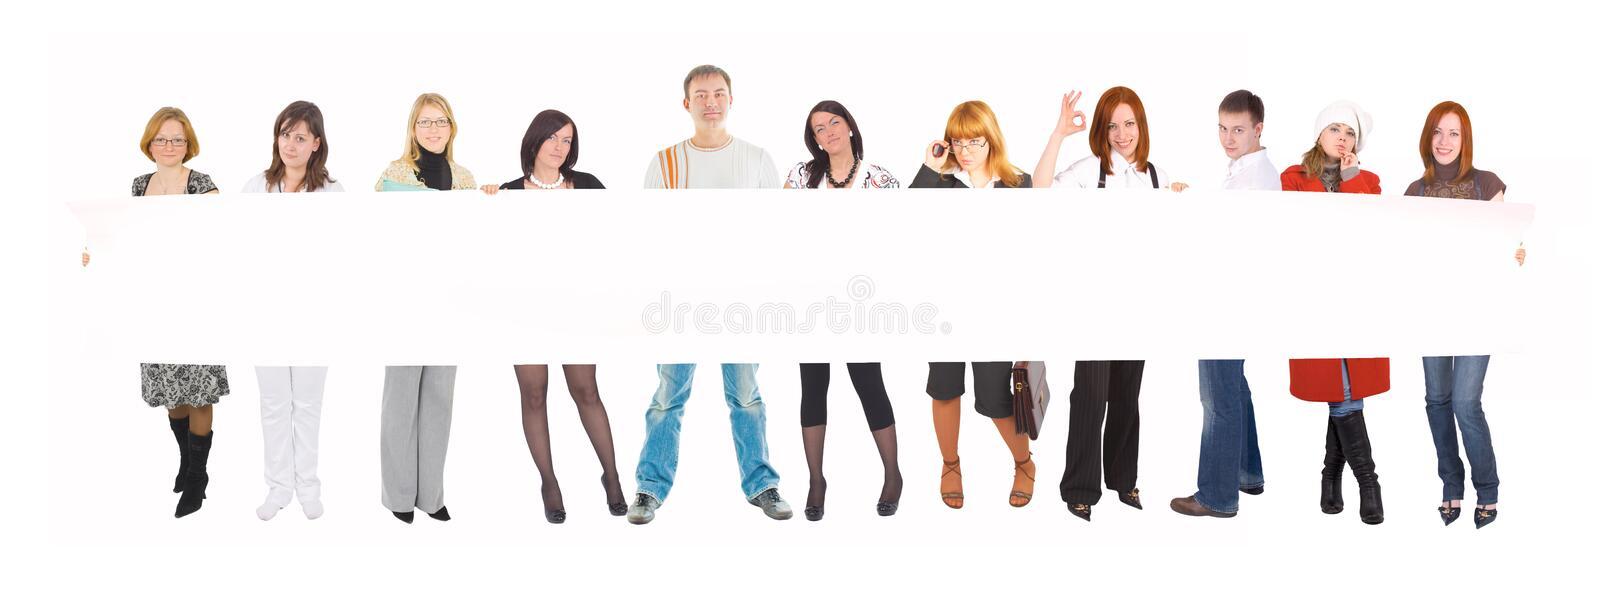 Team with a blank poster. Isolated on white background royalty free stock photos